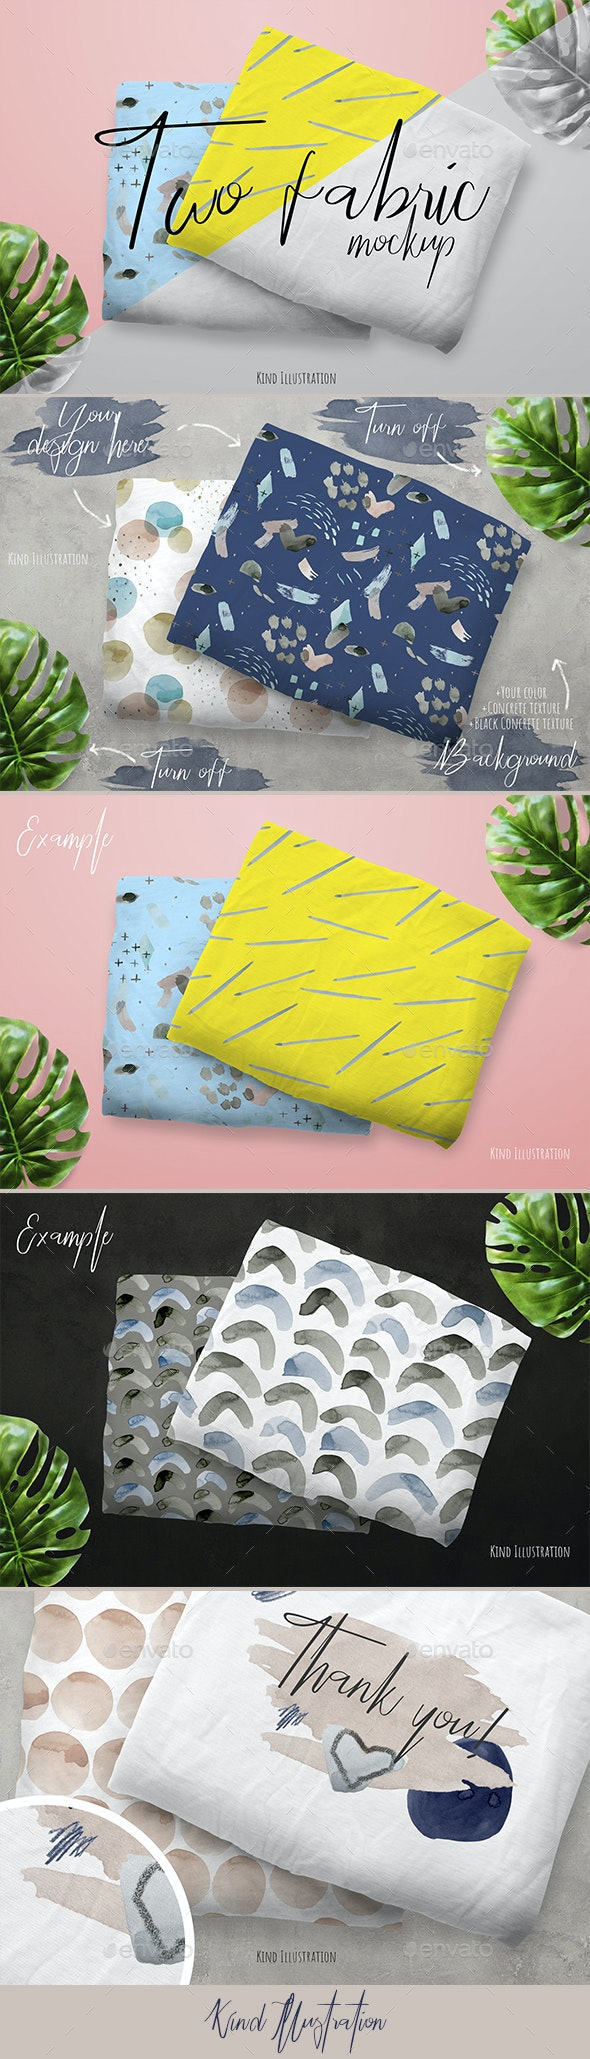 Two Fabric Mock-up - Miscellaneous Apparel